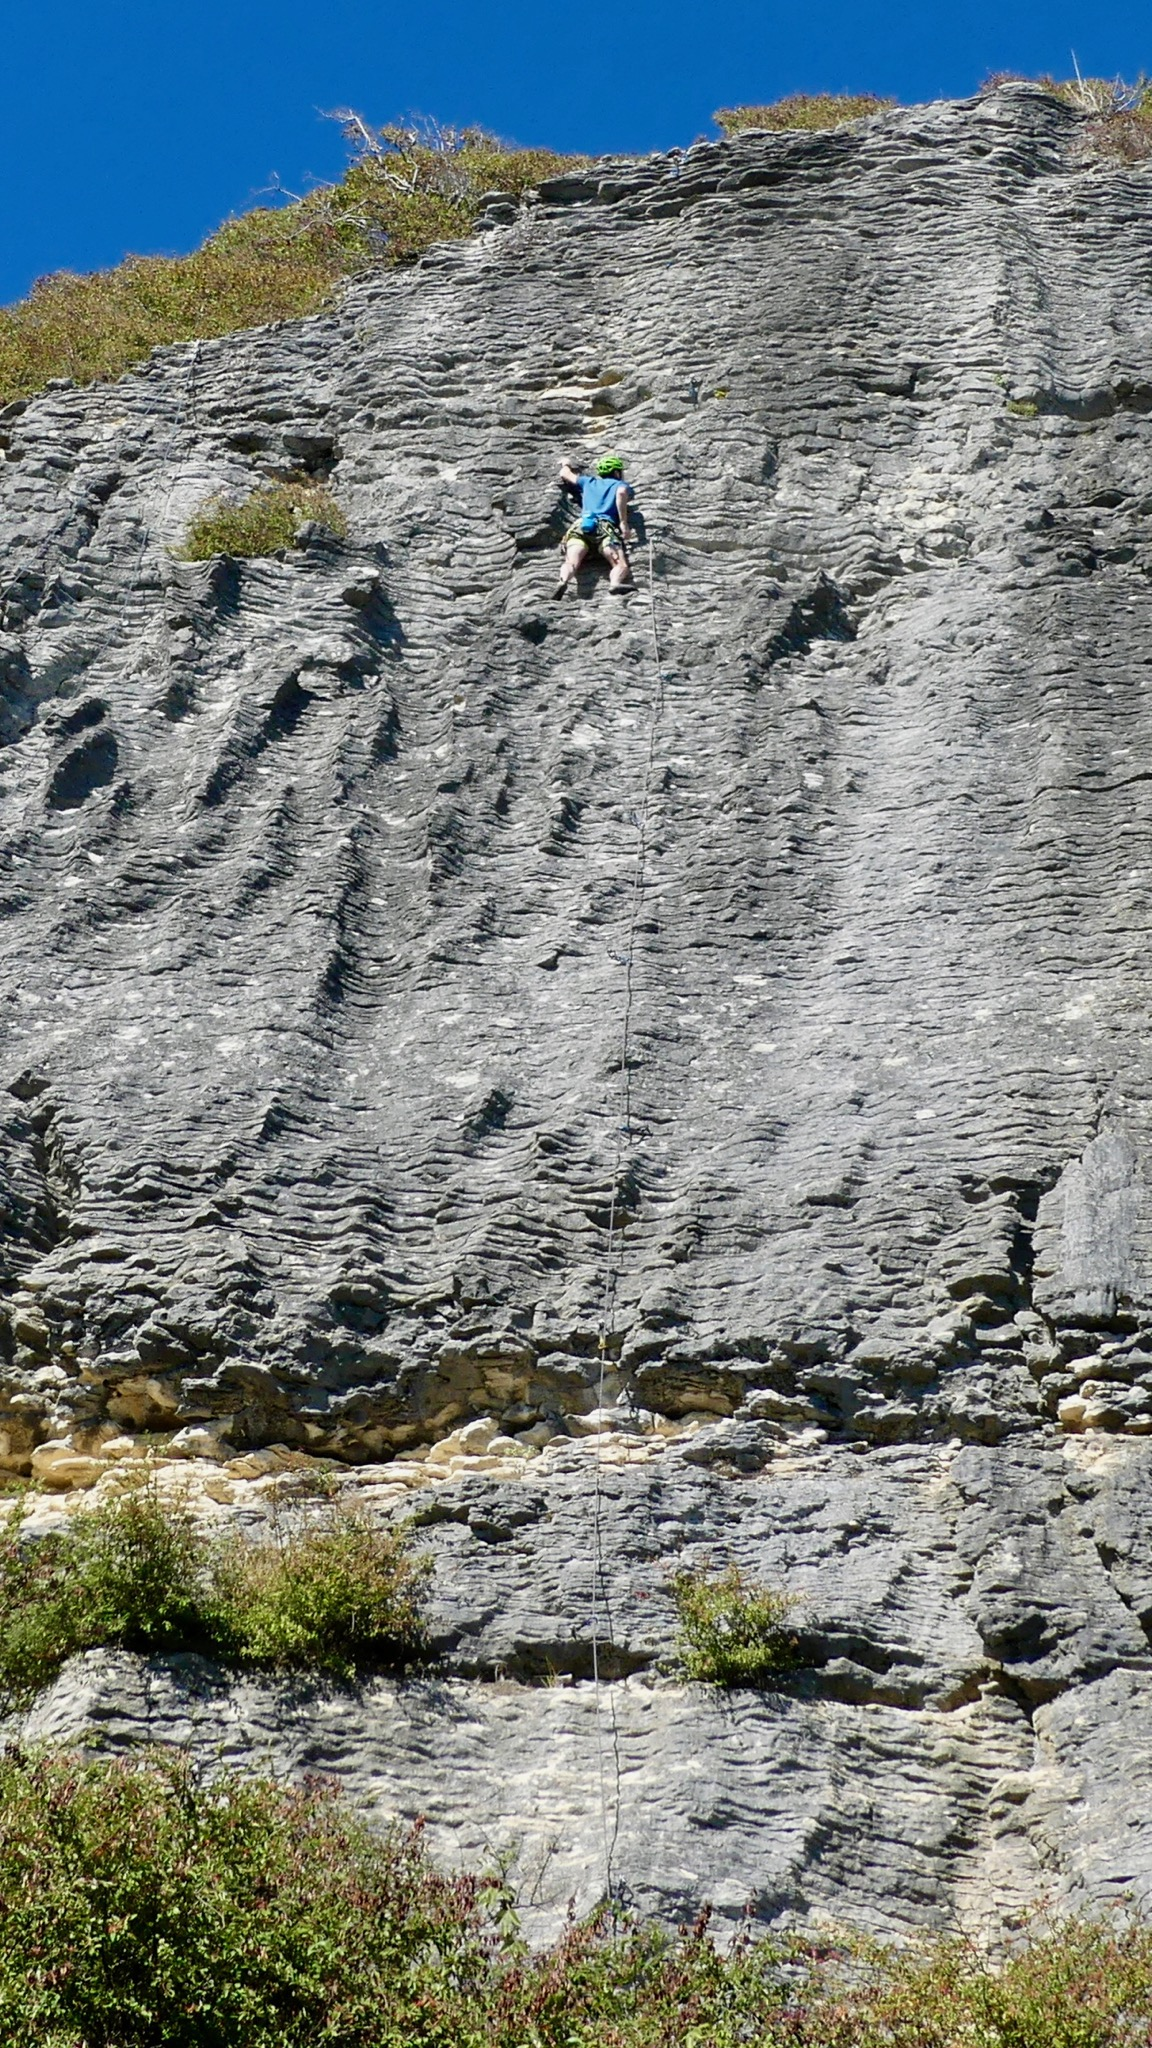 Alexei lead-climbing Marisol (grade 17) route on the Cathedral wall at Pohara.